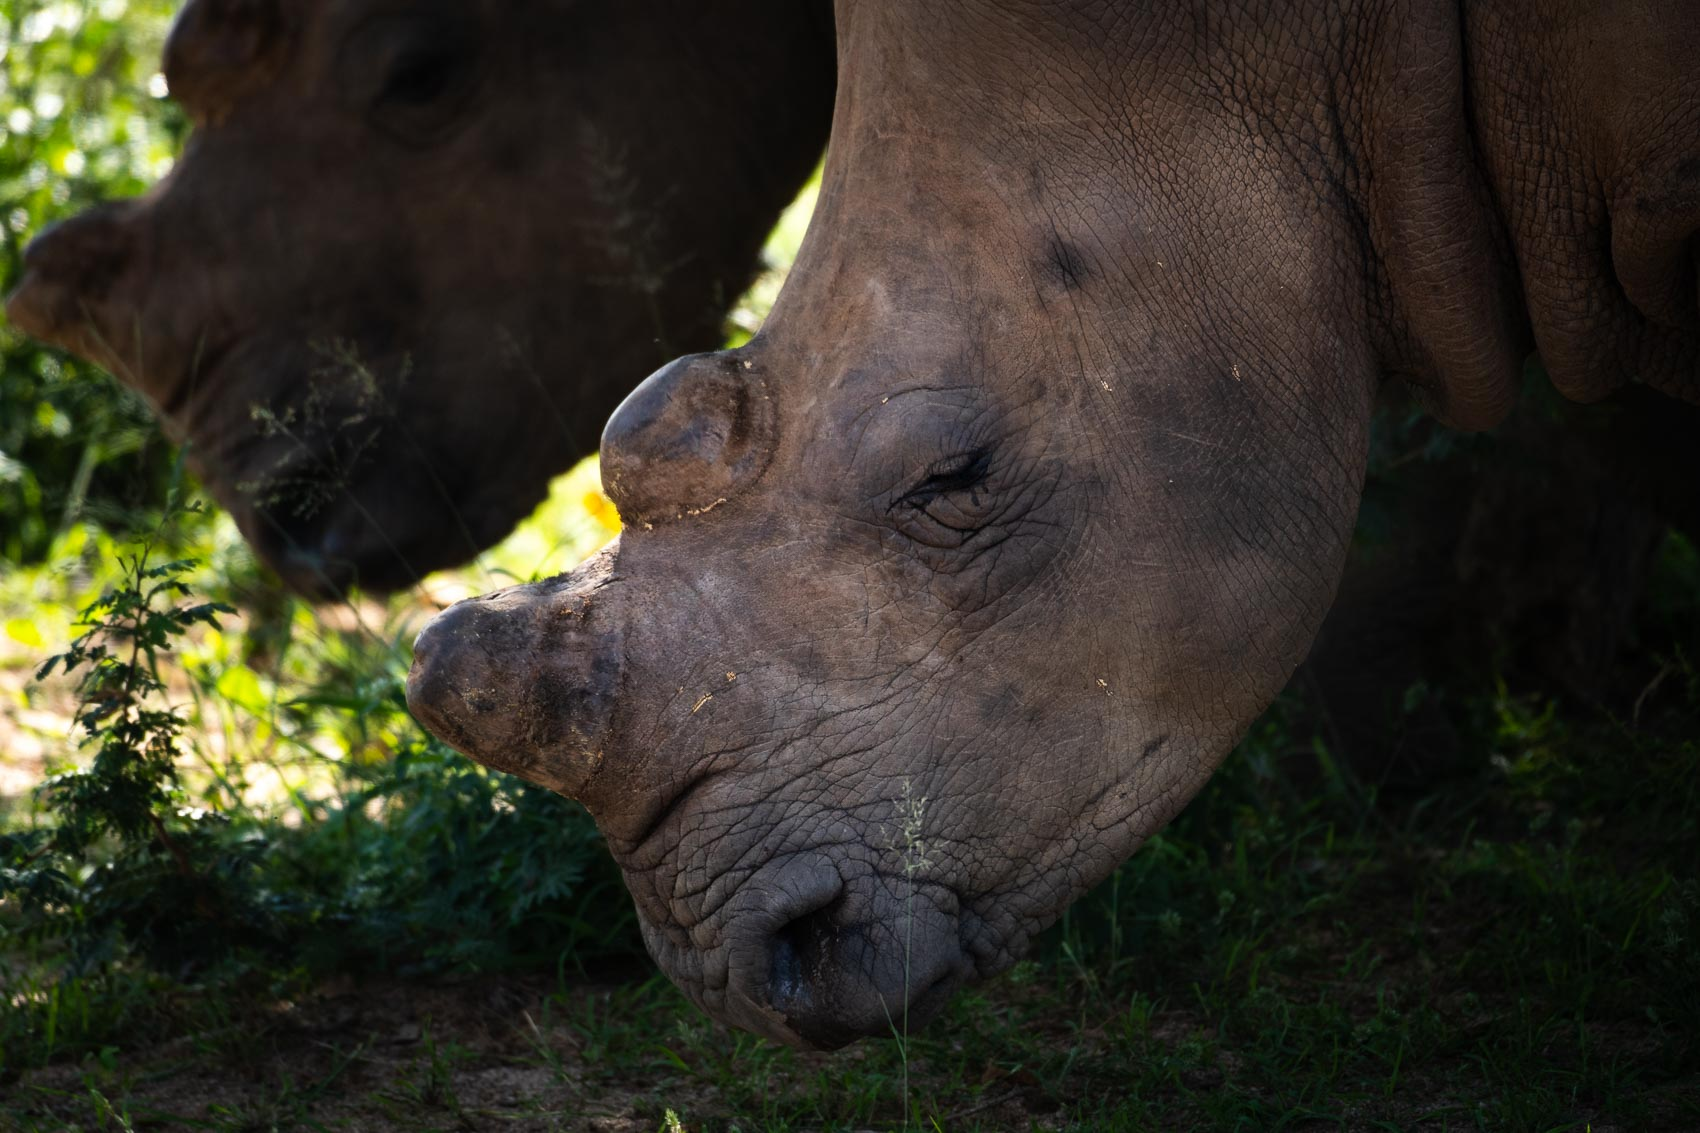 The face of a dehorned southern white rhino at the Hoedspruit Endangered Species Centre in South Africa